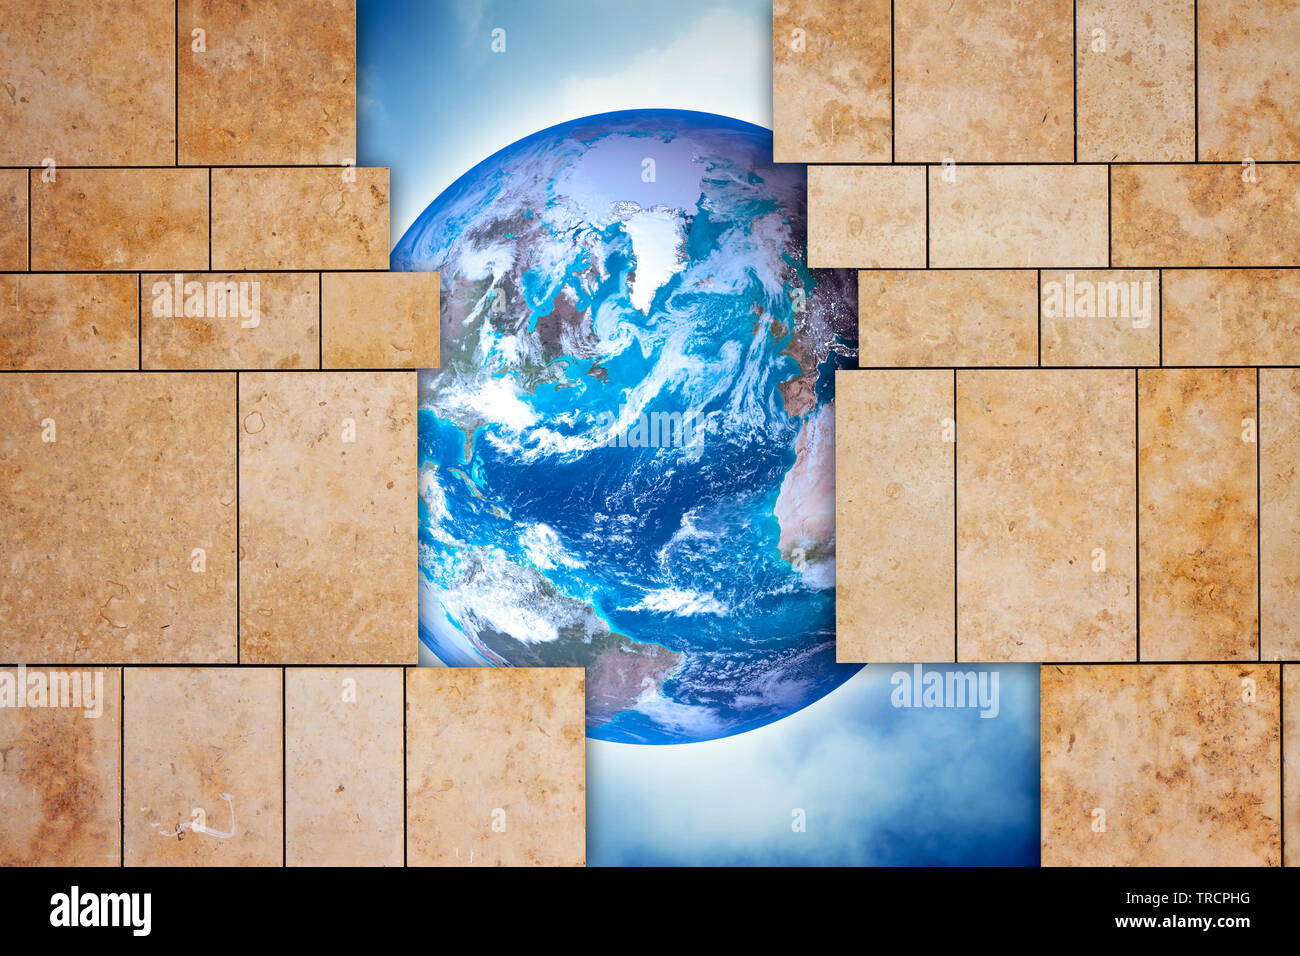 Through a open modern stone wall you can see the world - concept image - Photo composition with elements furnished by NASA - The image of the planet E - Stock Image